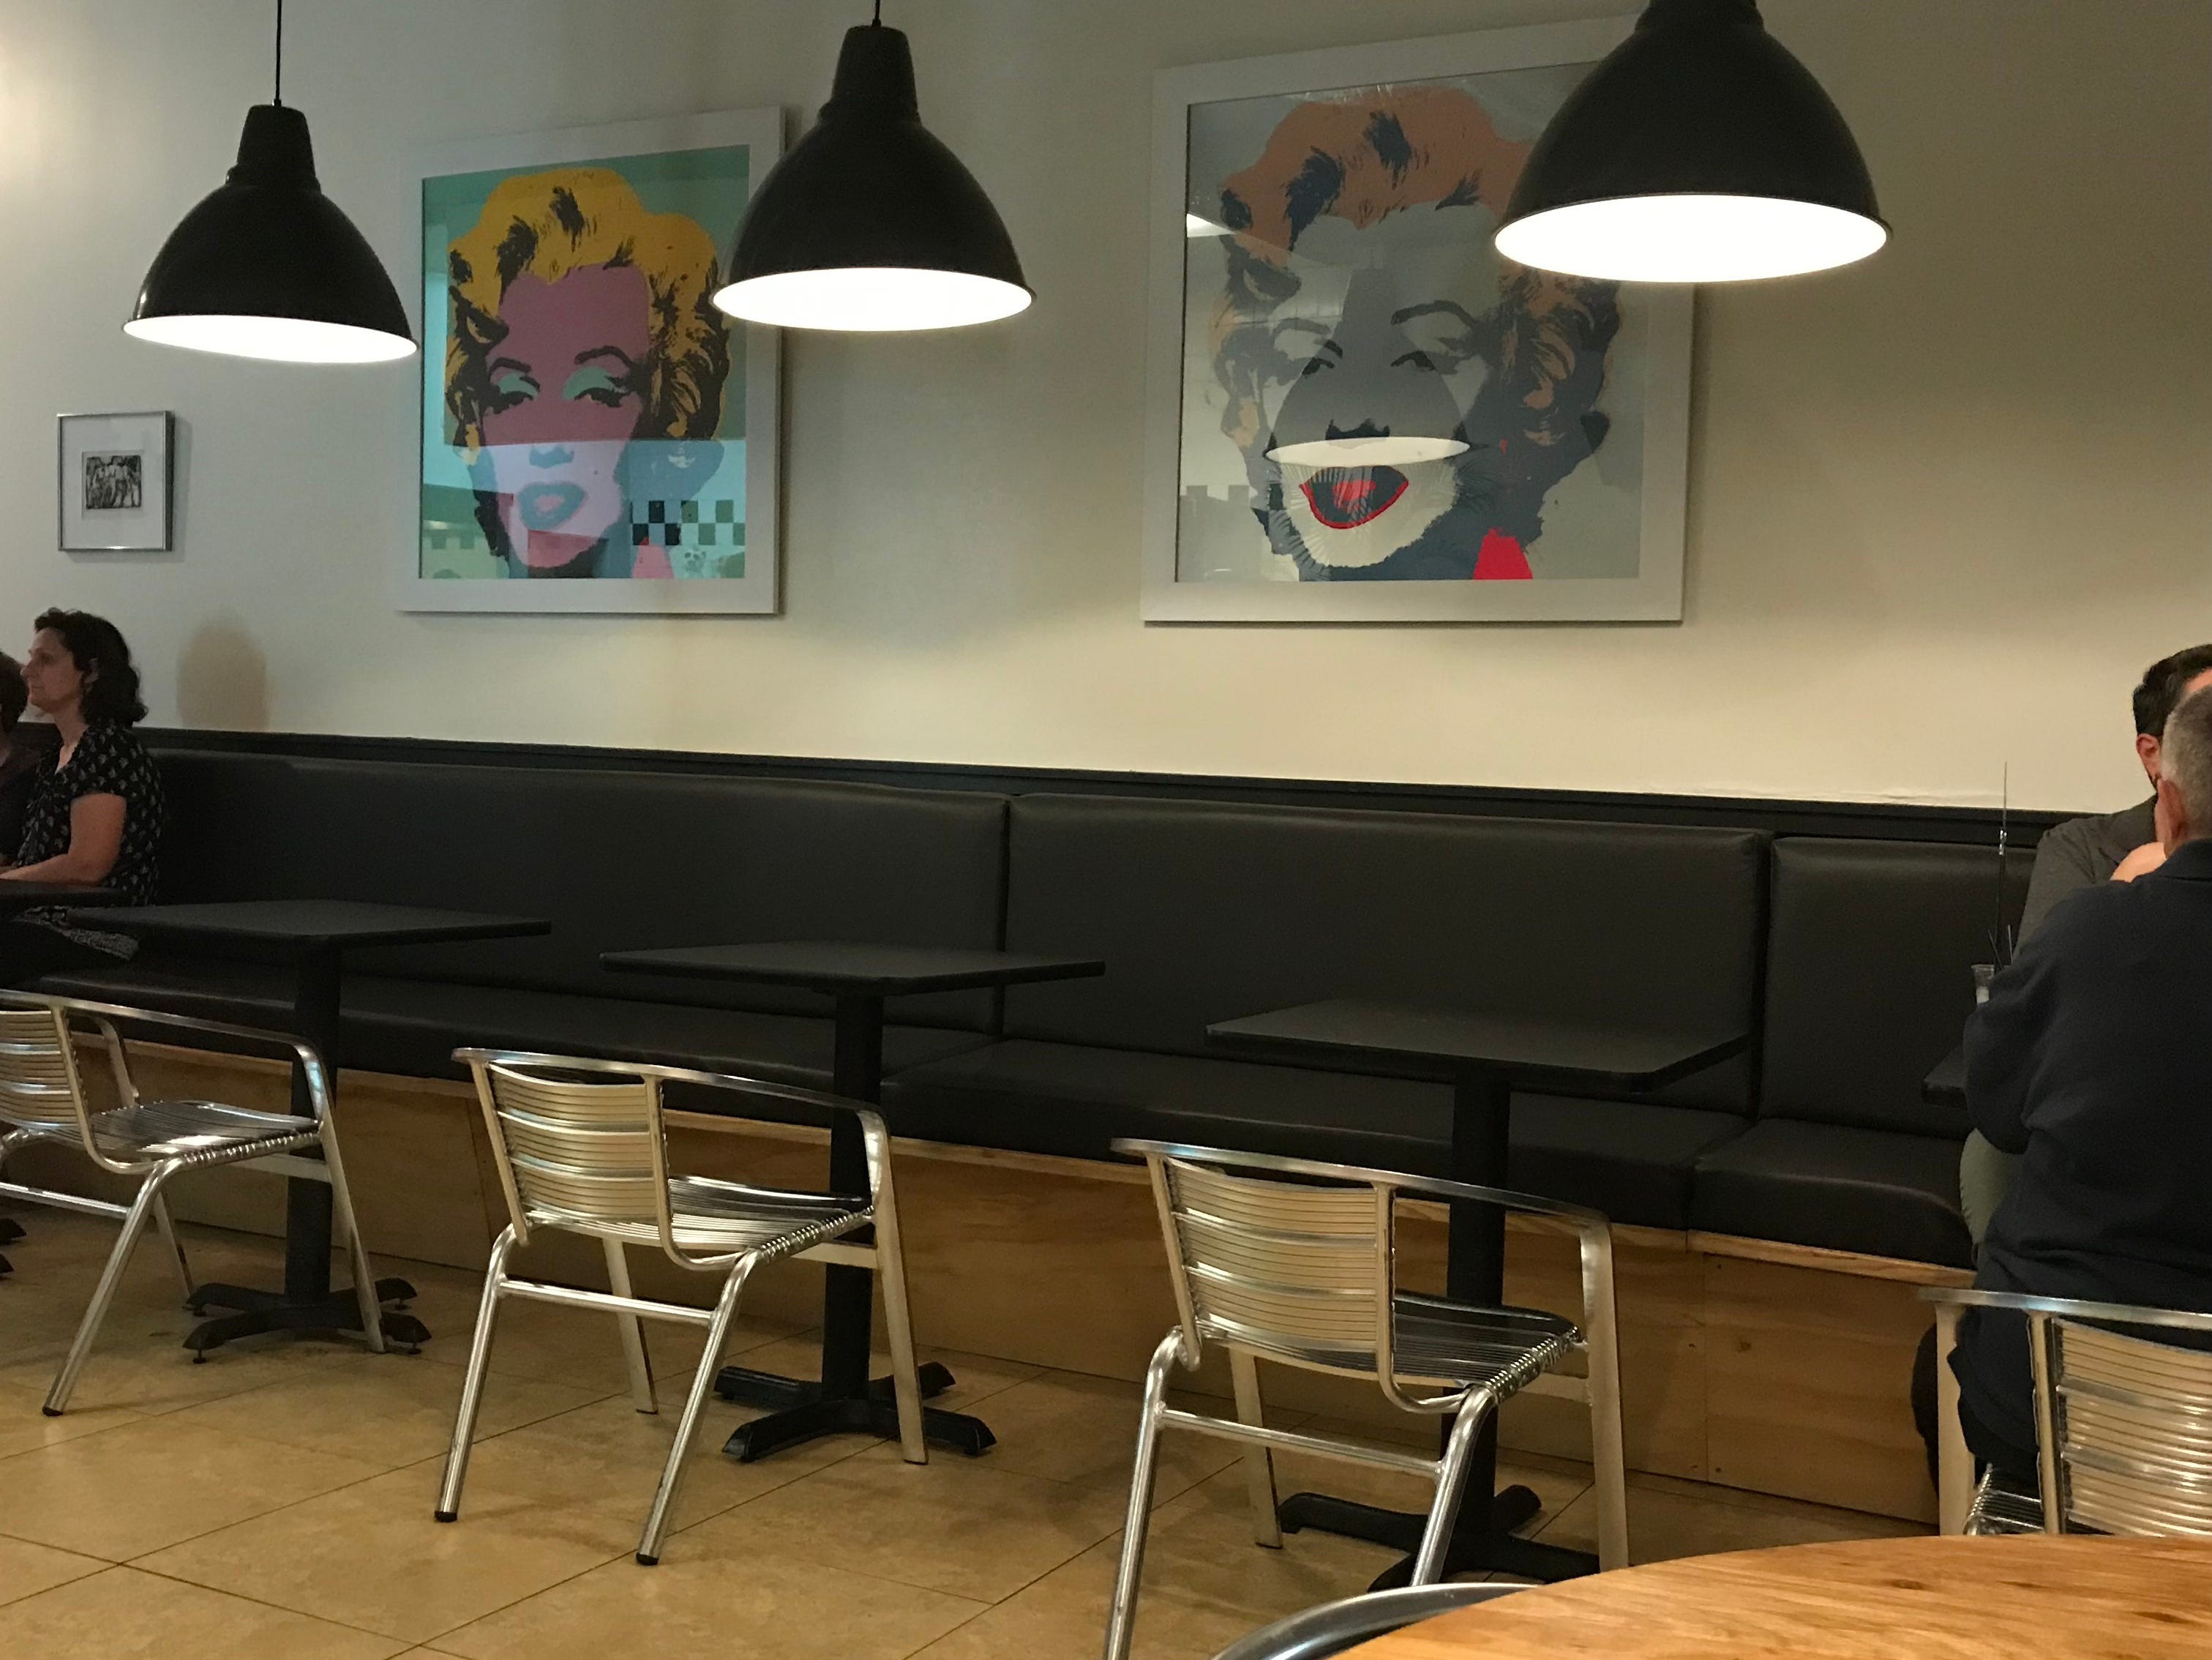 There is a banquette lining one wall with colorful posters of Andy Warhol's Marilyn Monroe above.